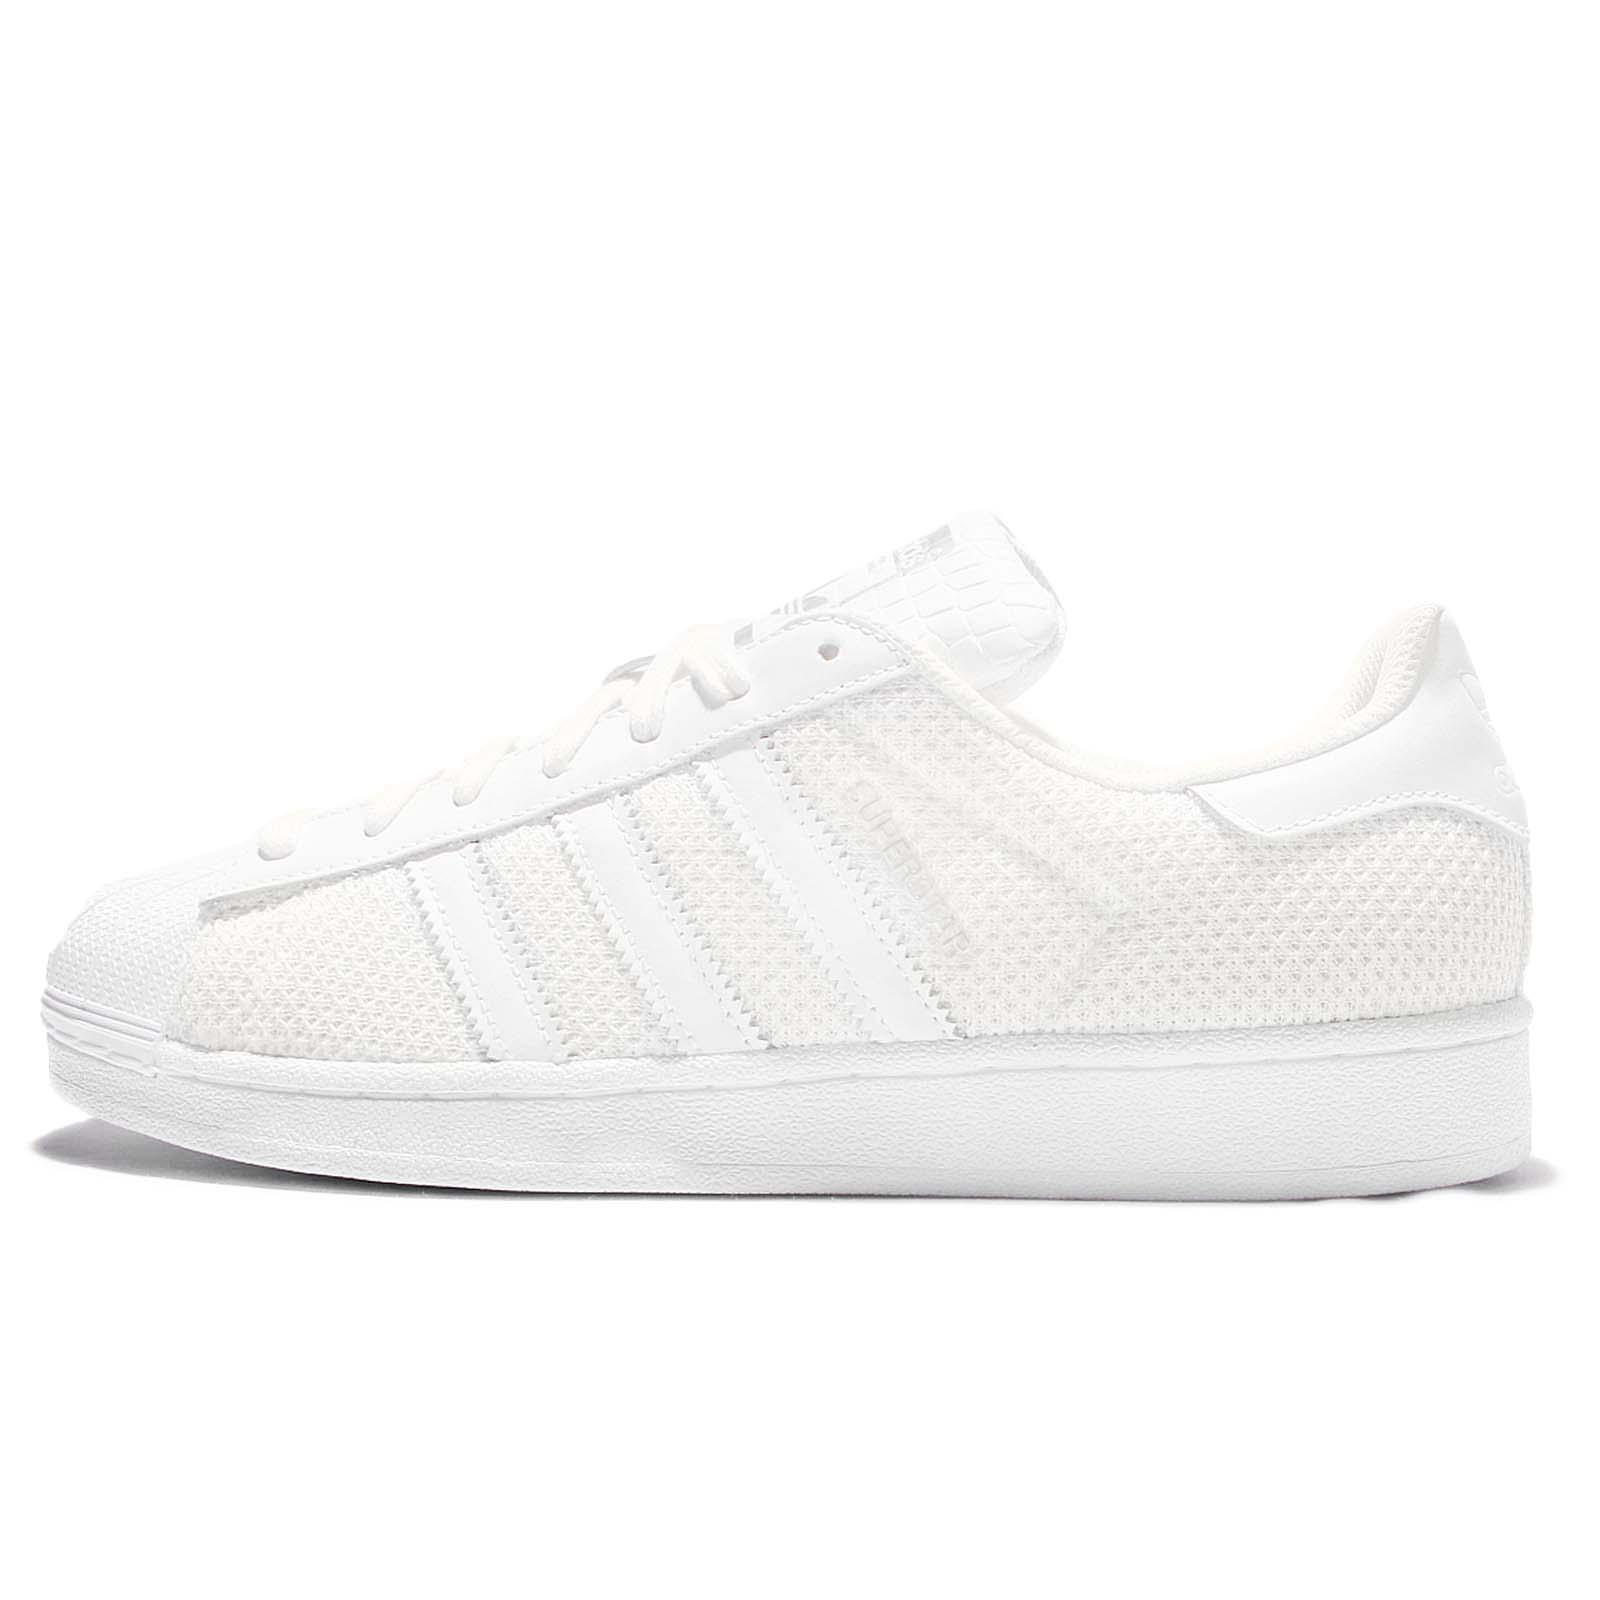 Cheap Adidas Superstar Euro Size 41 Athletic Shoes for Men